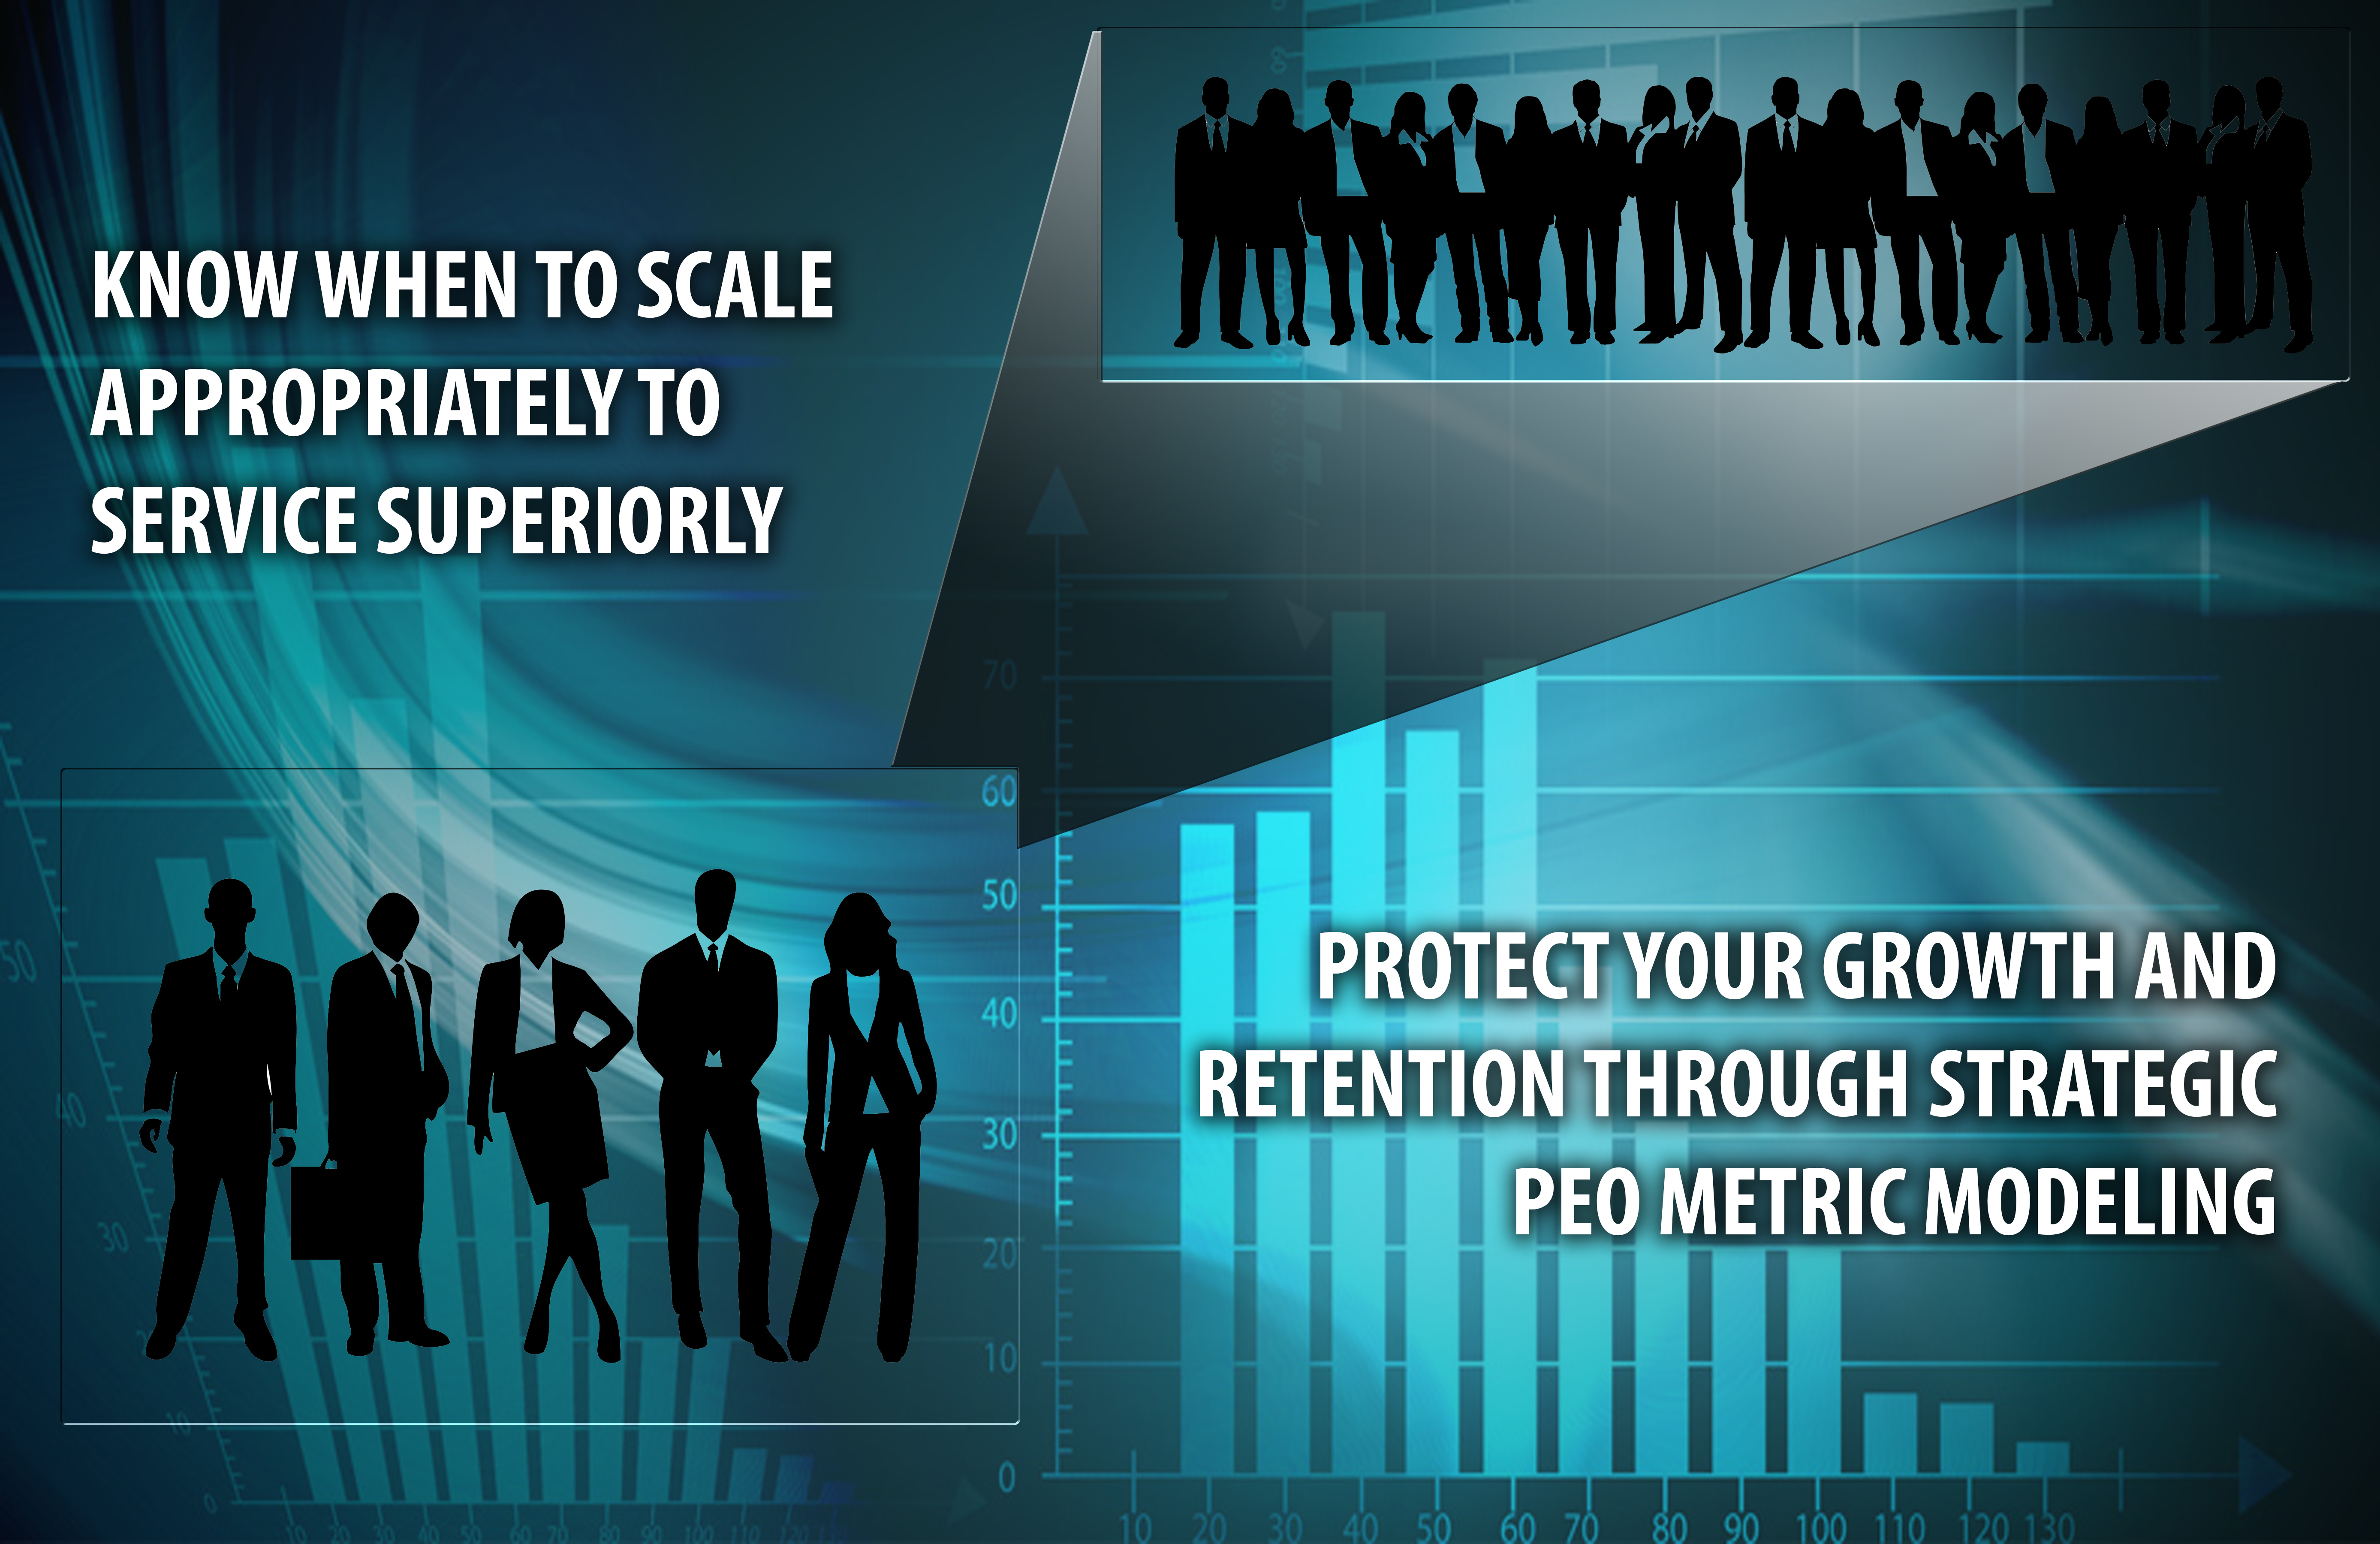 Have a plan with metrics to understand when to scale and overlay that with growth trending to create predictability with your model.